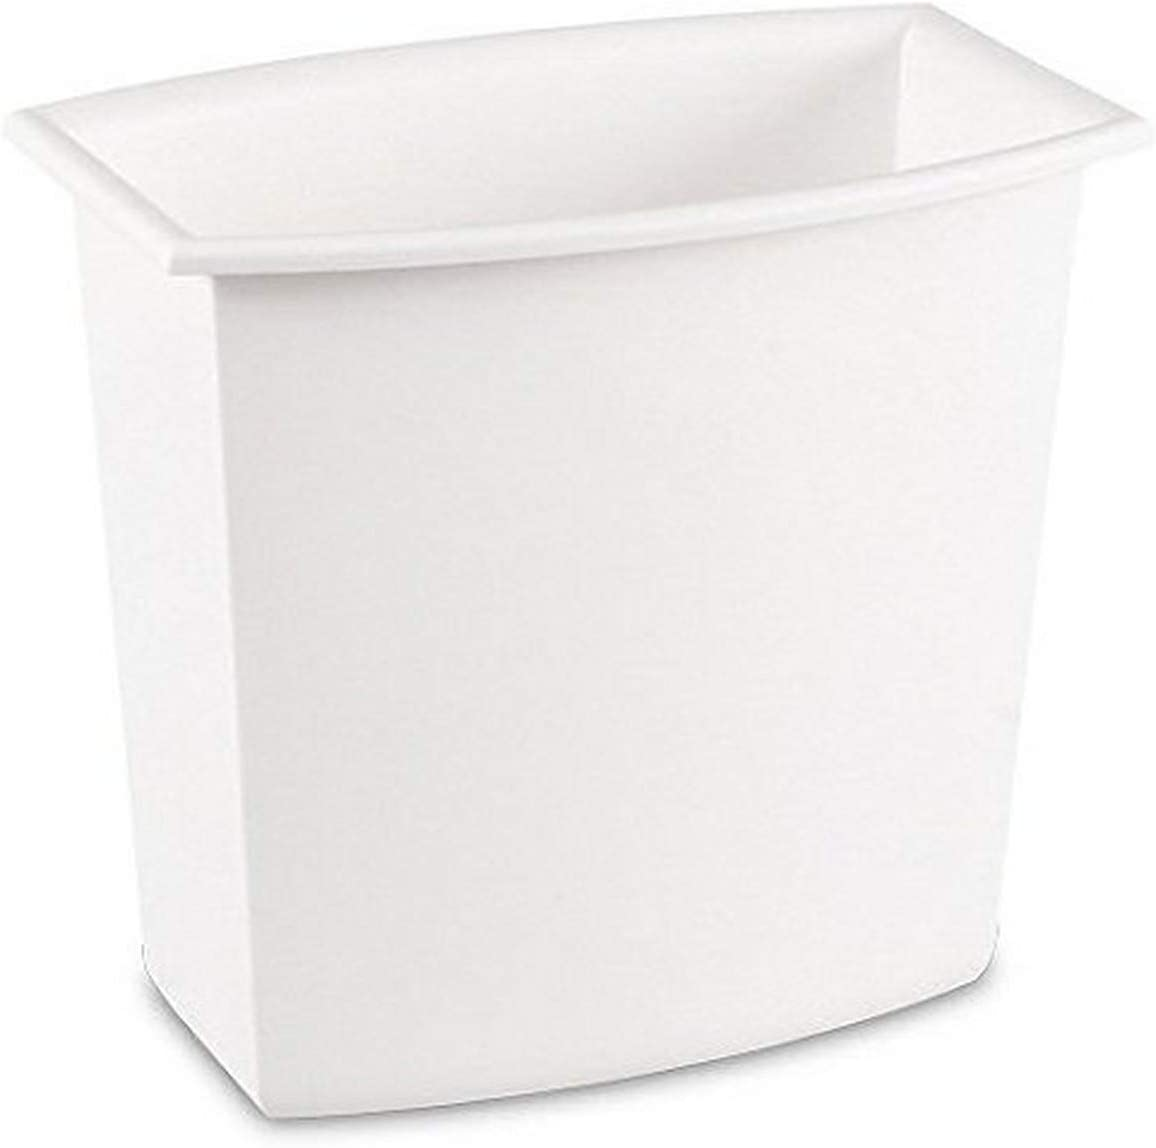 Amazon Com Sterilite Corp 10220012 Rectangular Vanity Wastebasket 2 Gallons Assorted Colors Home Kitchen